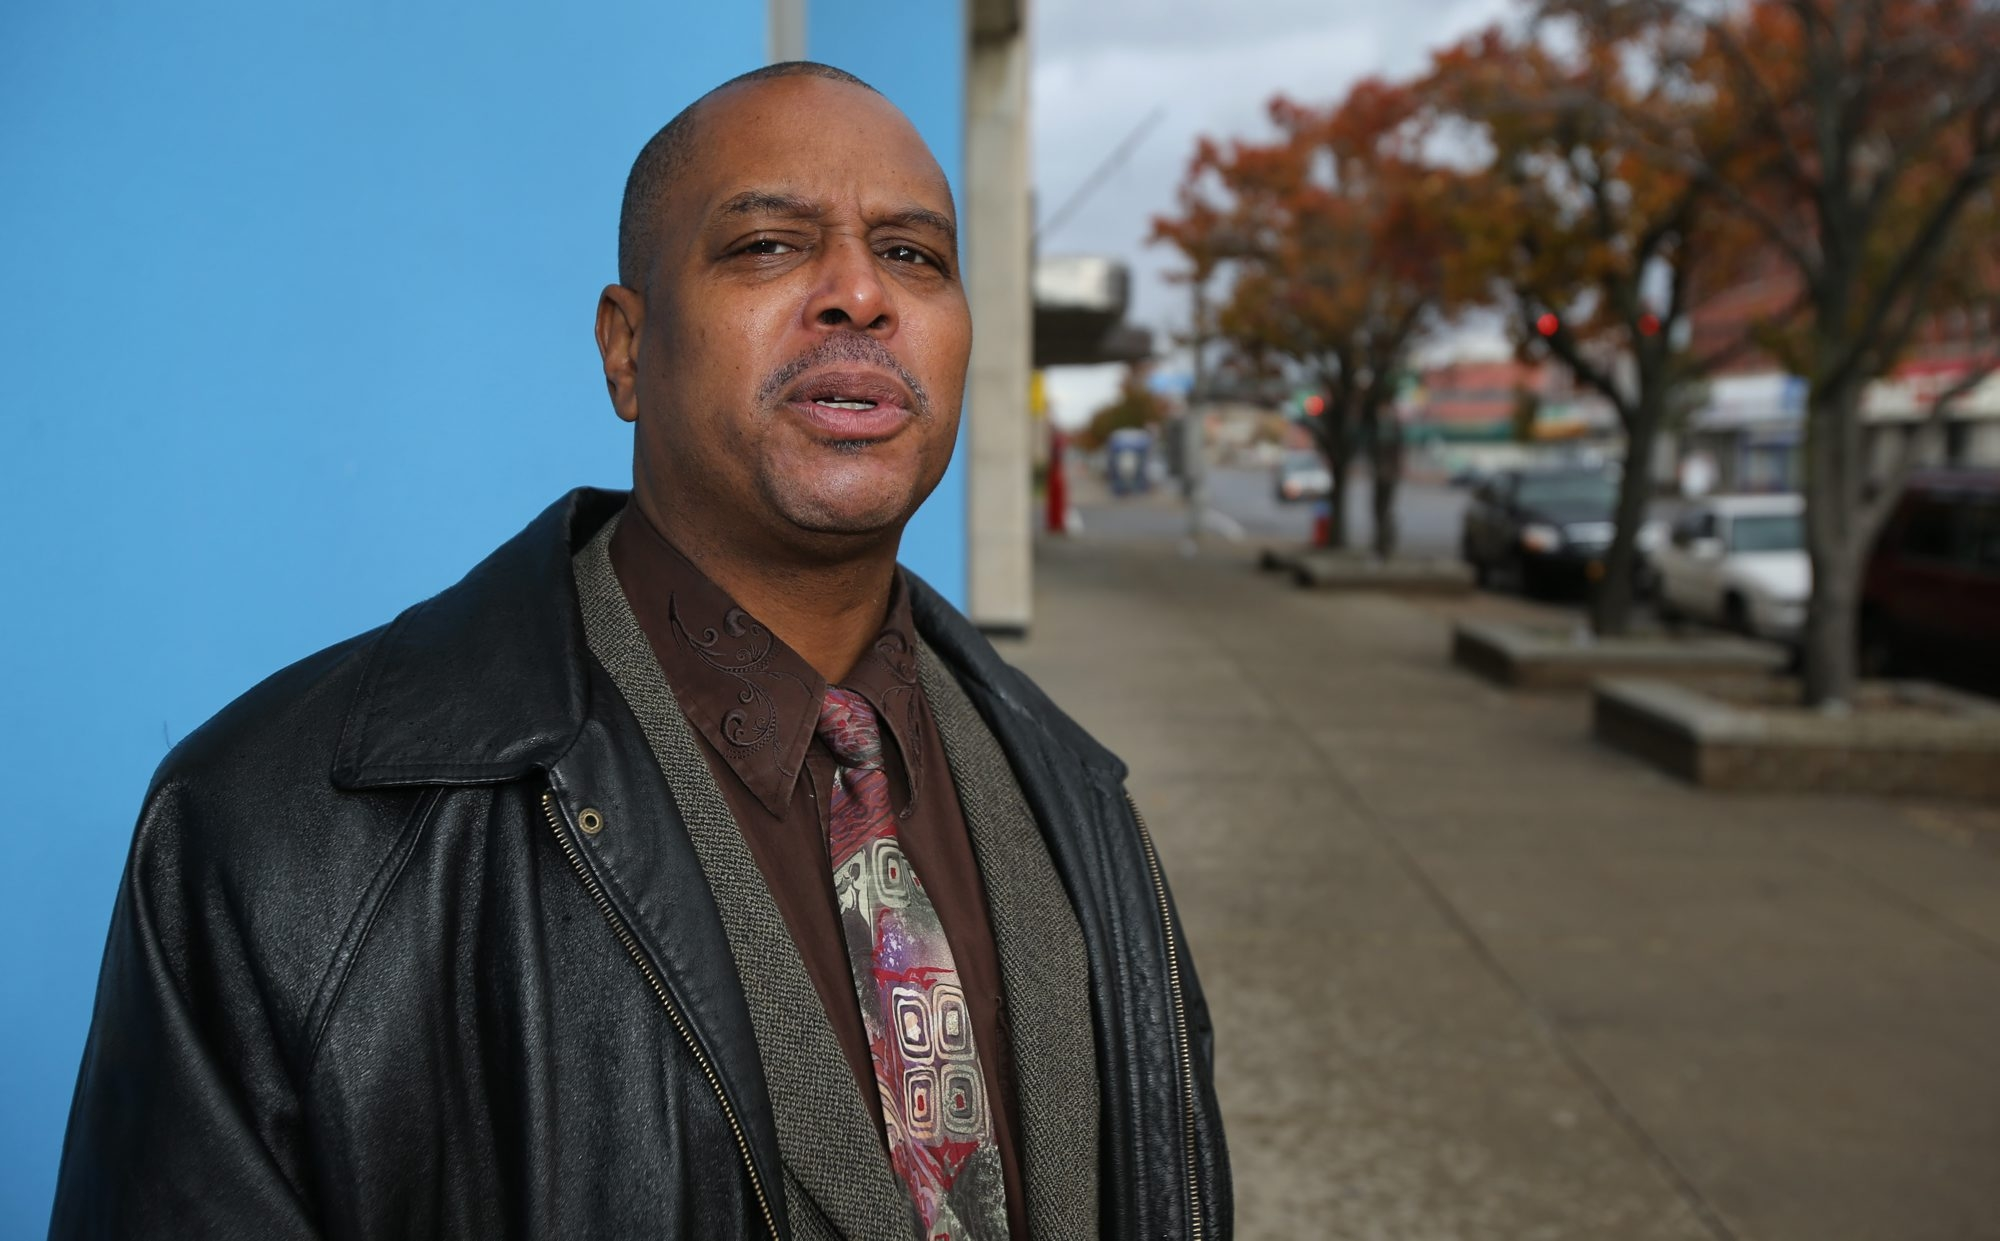 Robert Harris Sr. was stopped by Town of Tonawanda police. Now a second man has made charges of racial profiling.